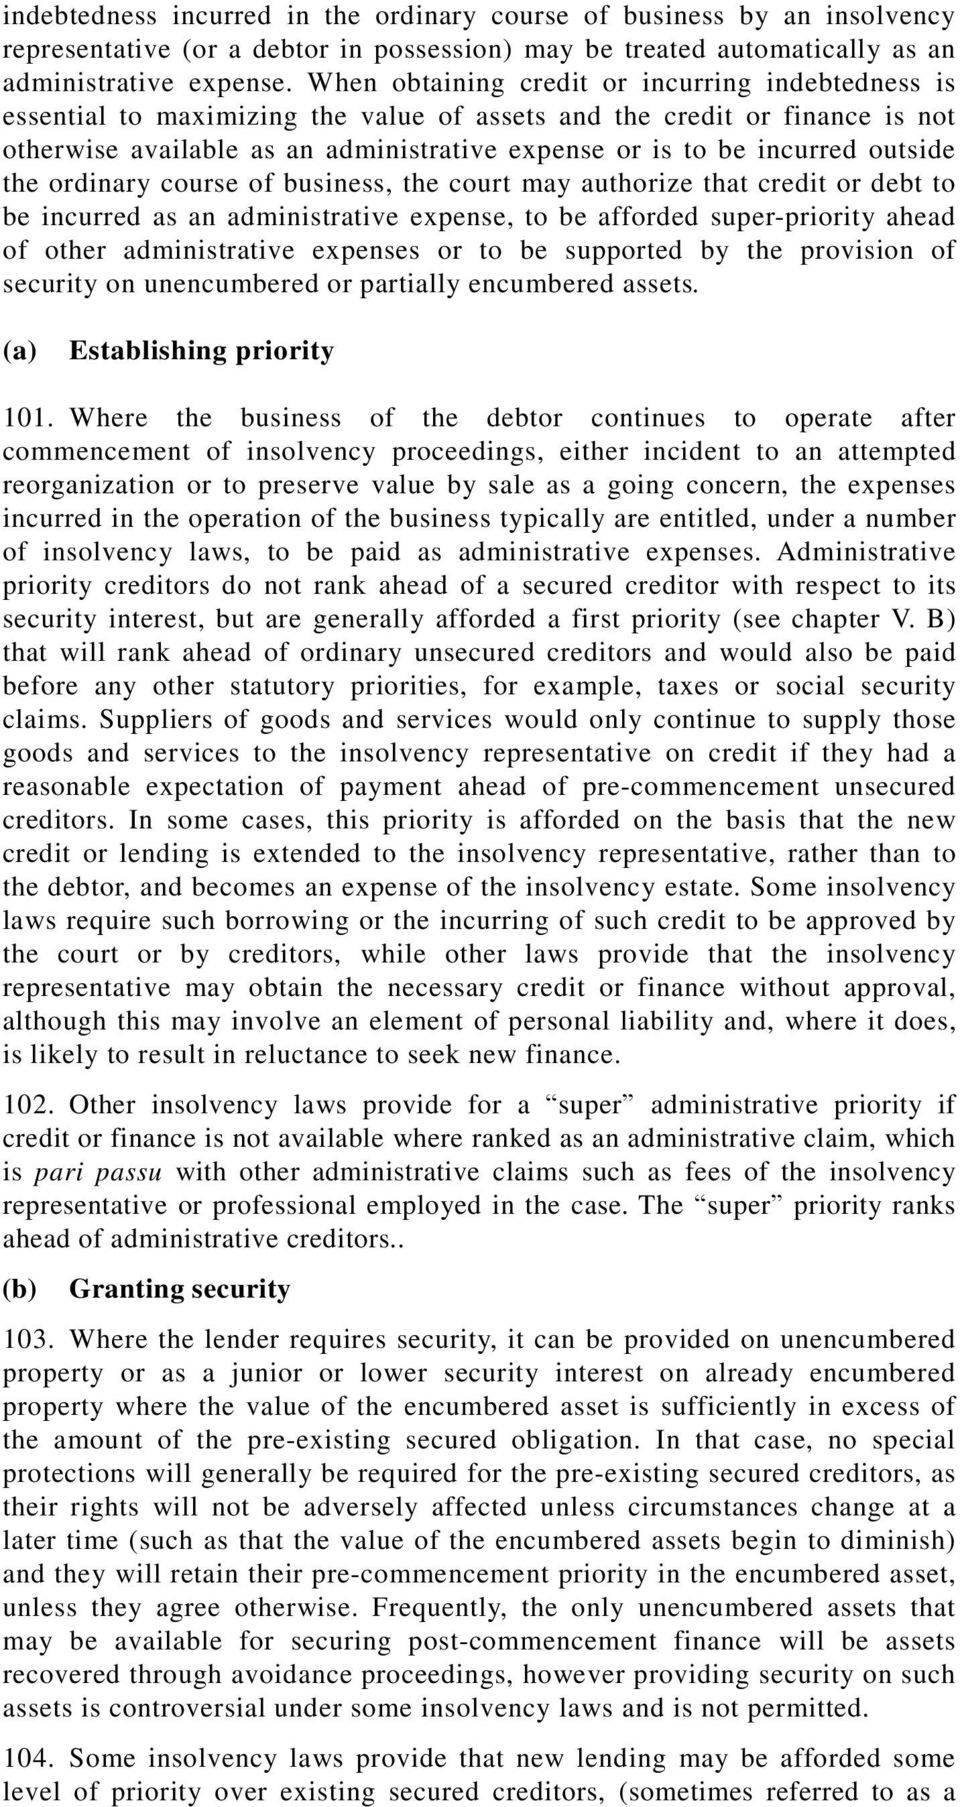 outside the ordinary course of business, the court may authorize that credit or debt to be incurred as an administrative expense, to be afforded super-priority ahead of other administrative expenses